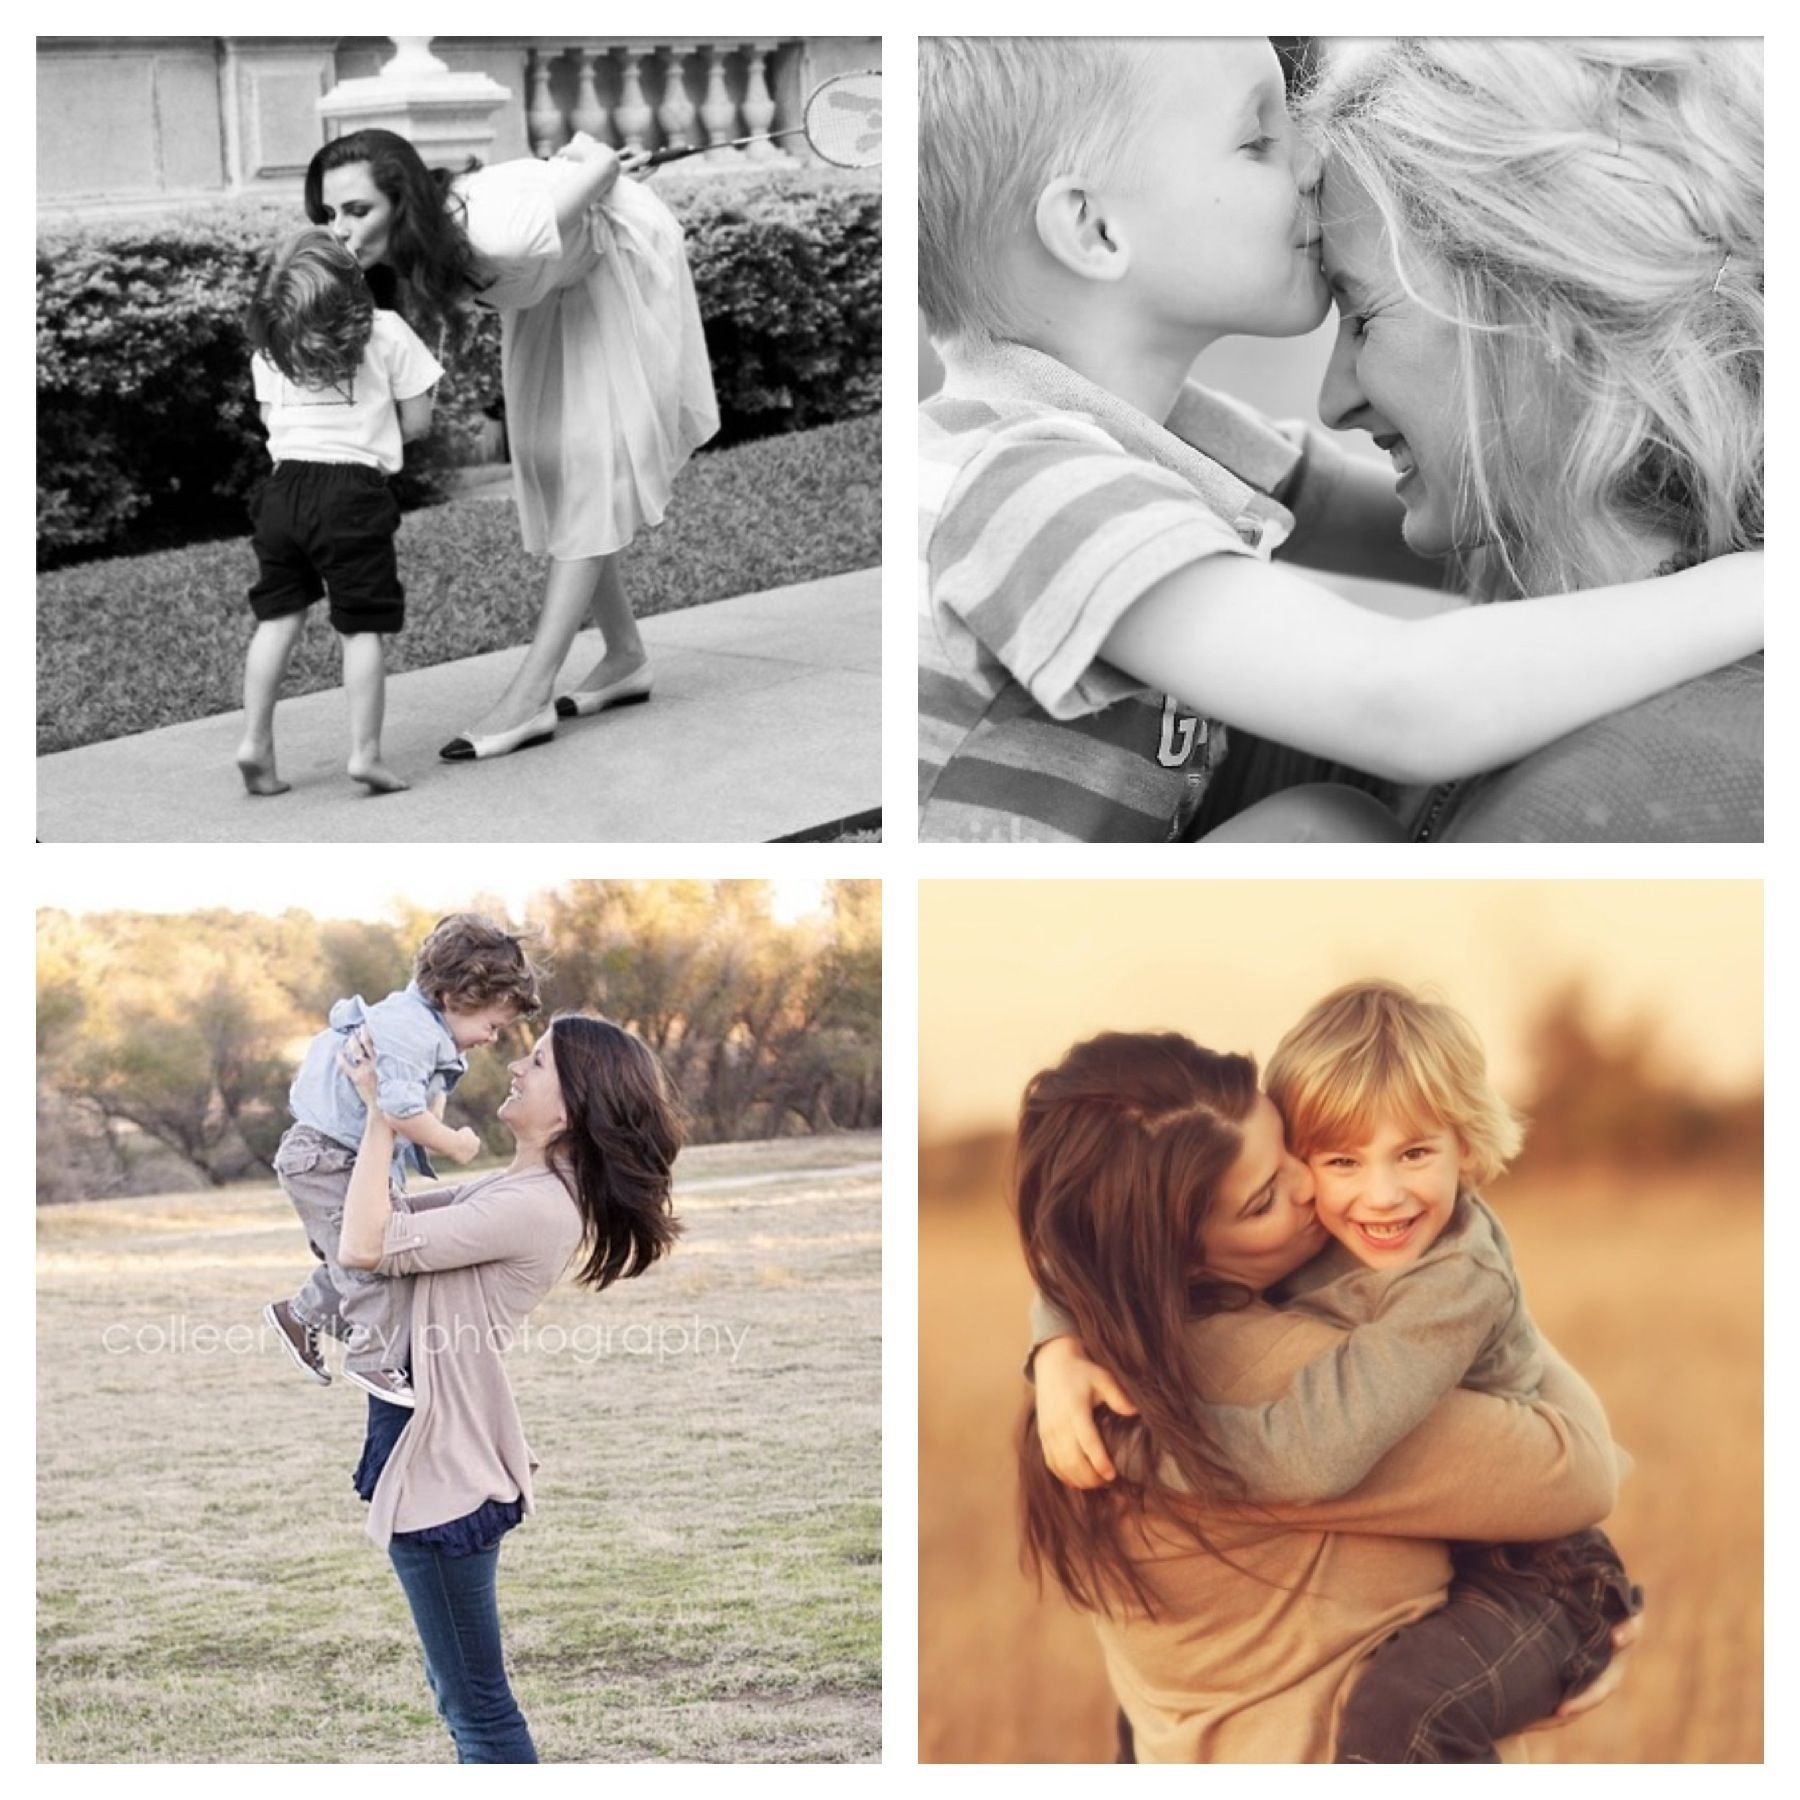 10 Wonderful Mother And Son Photo Ideas mother toddler son photo poses put this together for ideas to do 2020